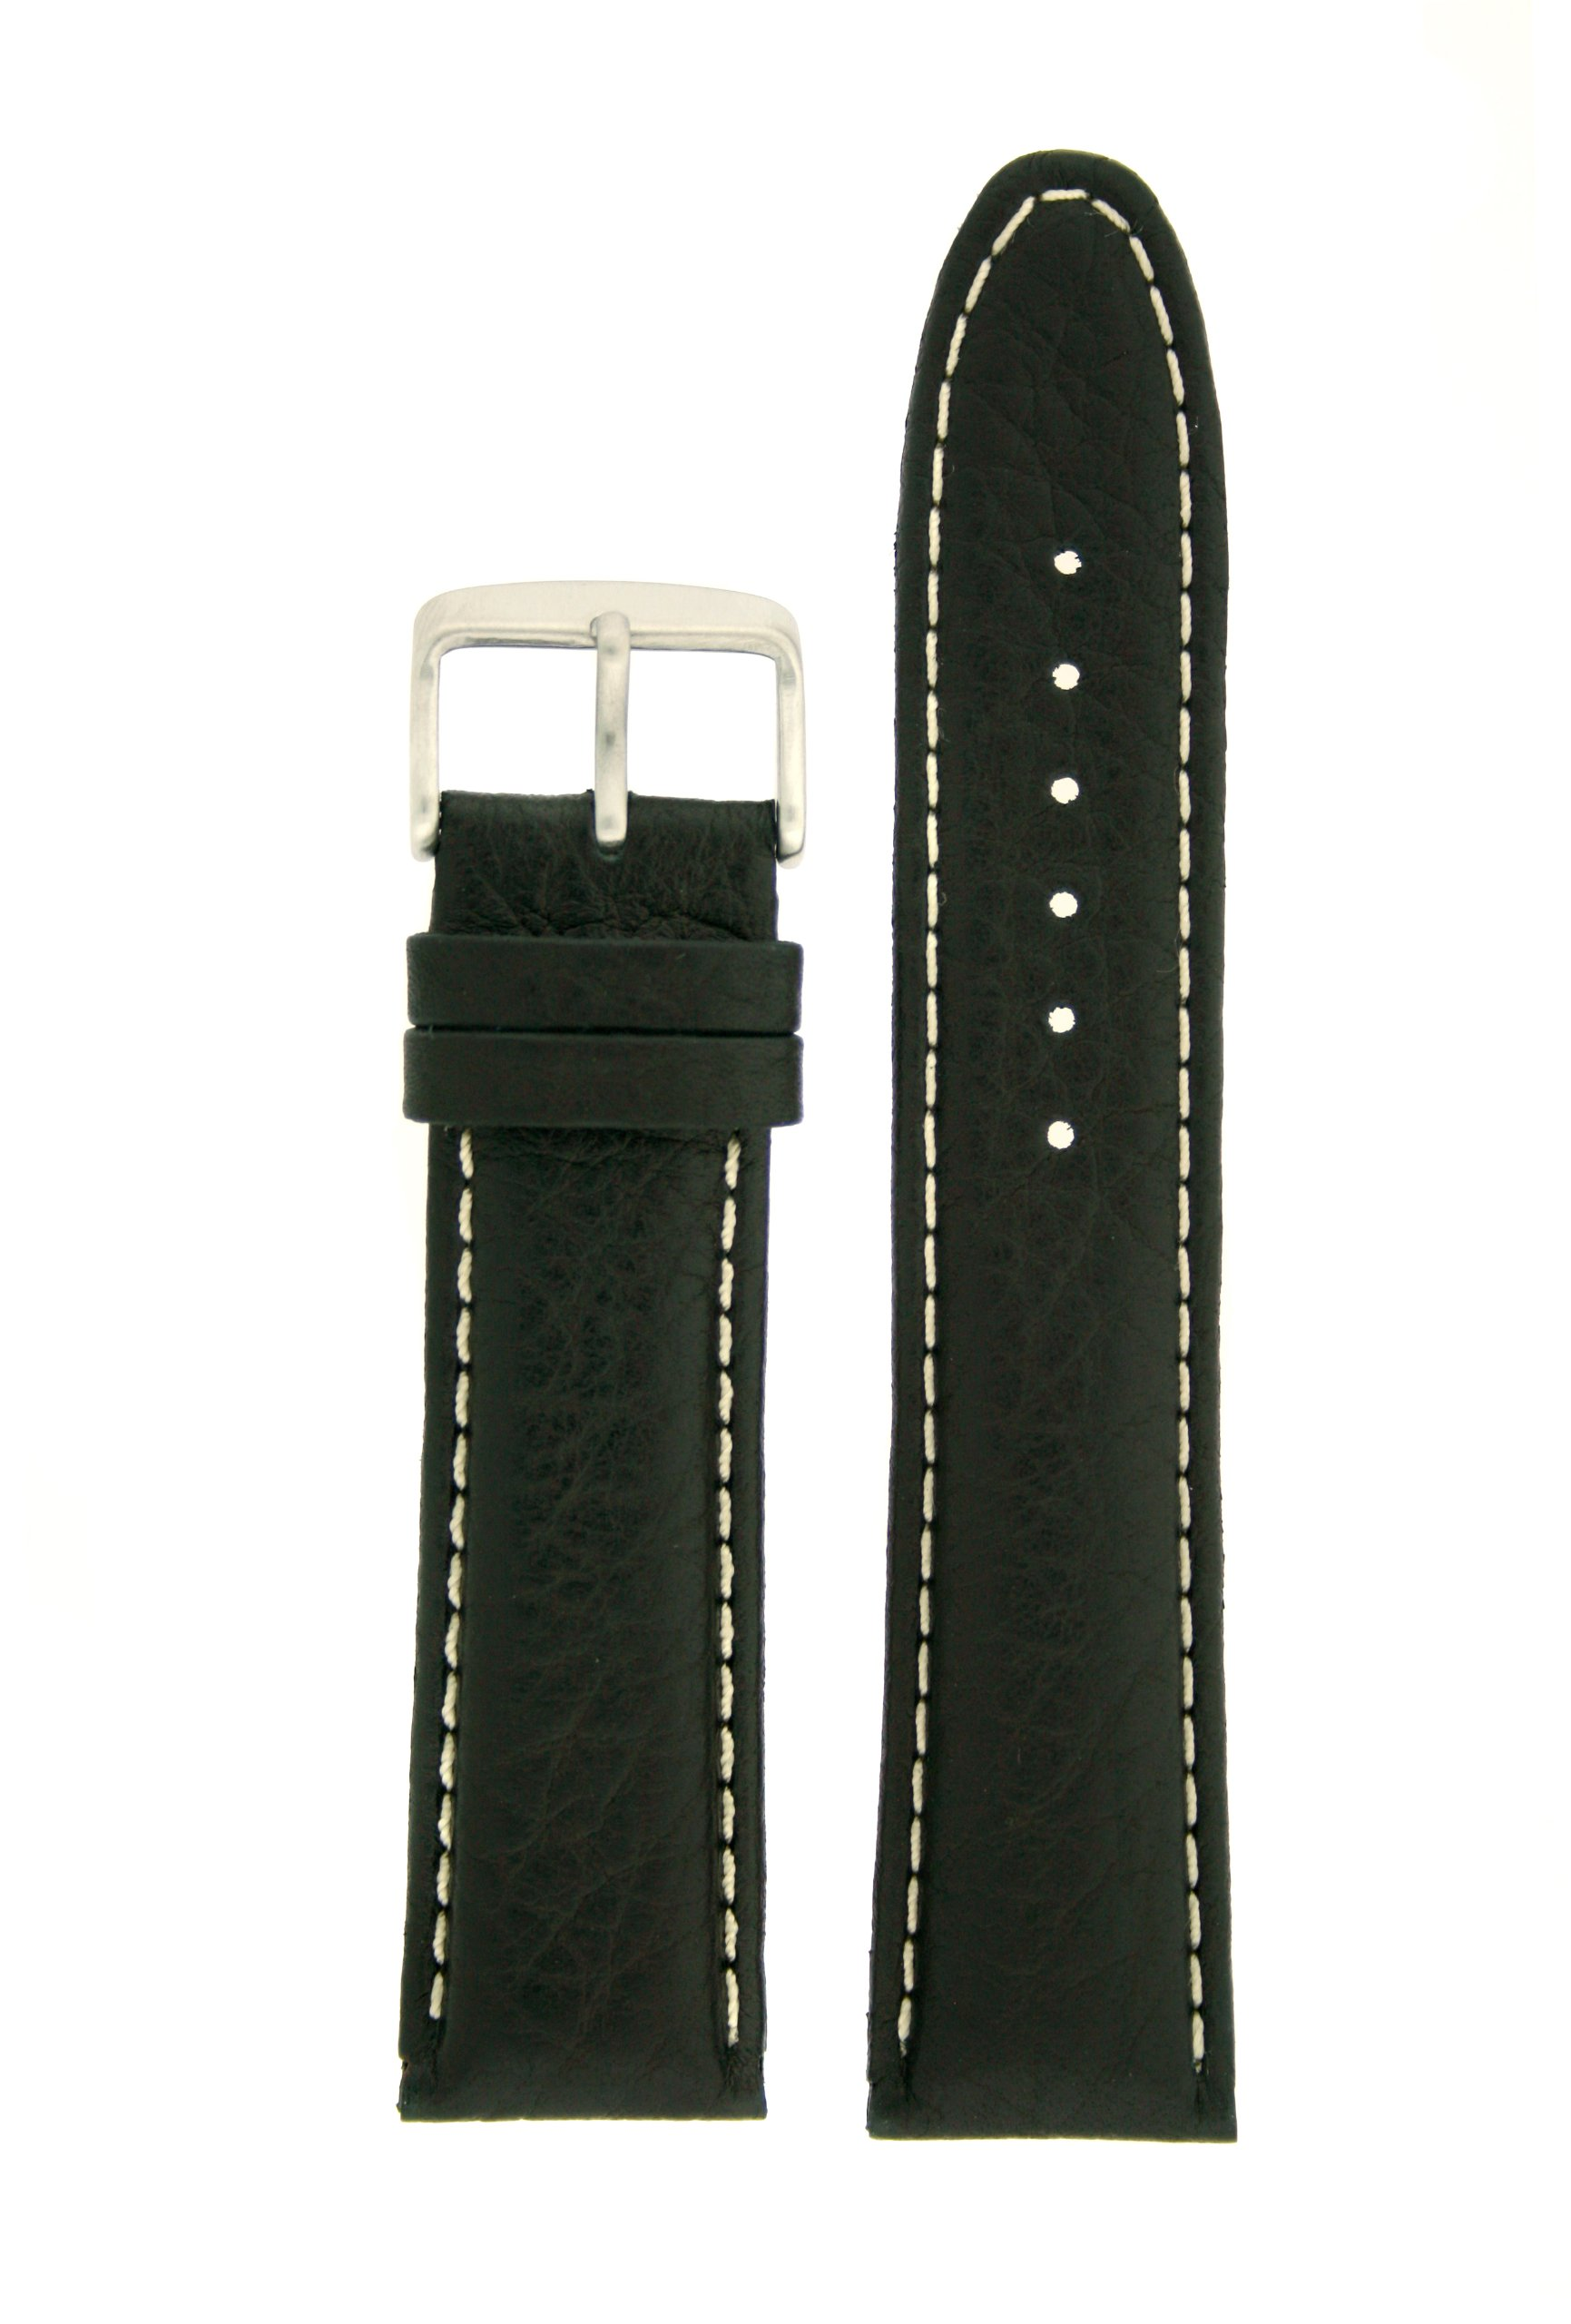 Extra Thick Padded Watch Band Genuine Leather Black 20 millimeters White Stitching Tech Swiss